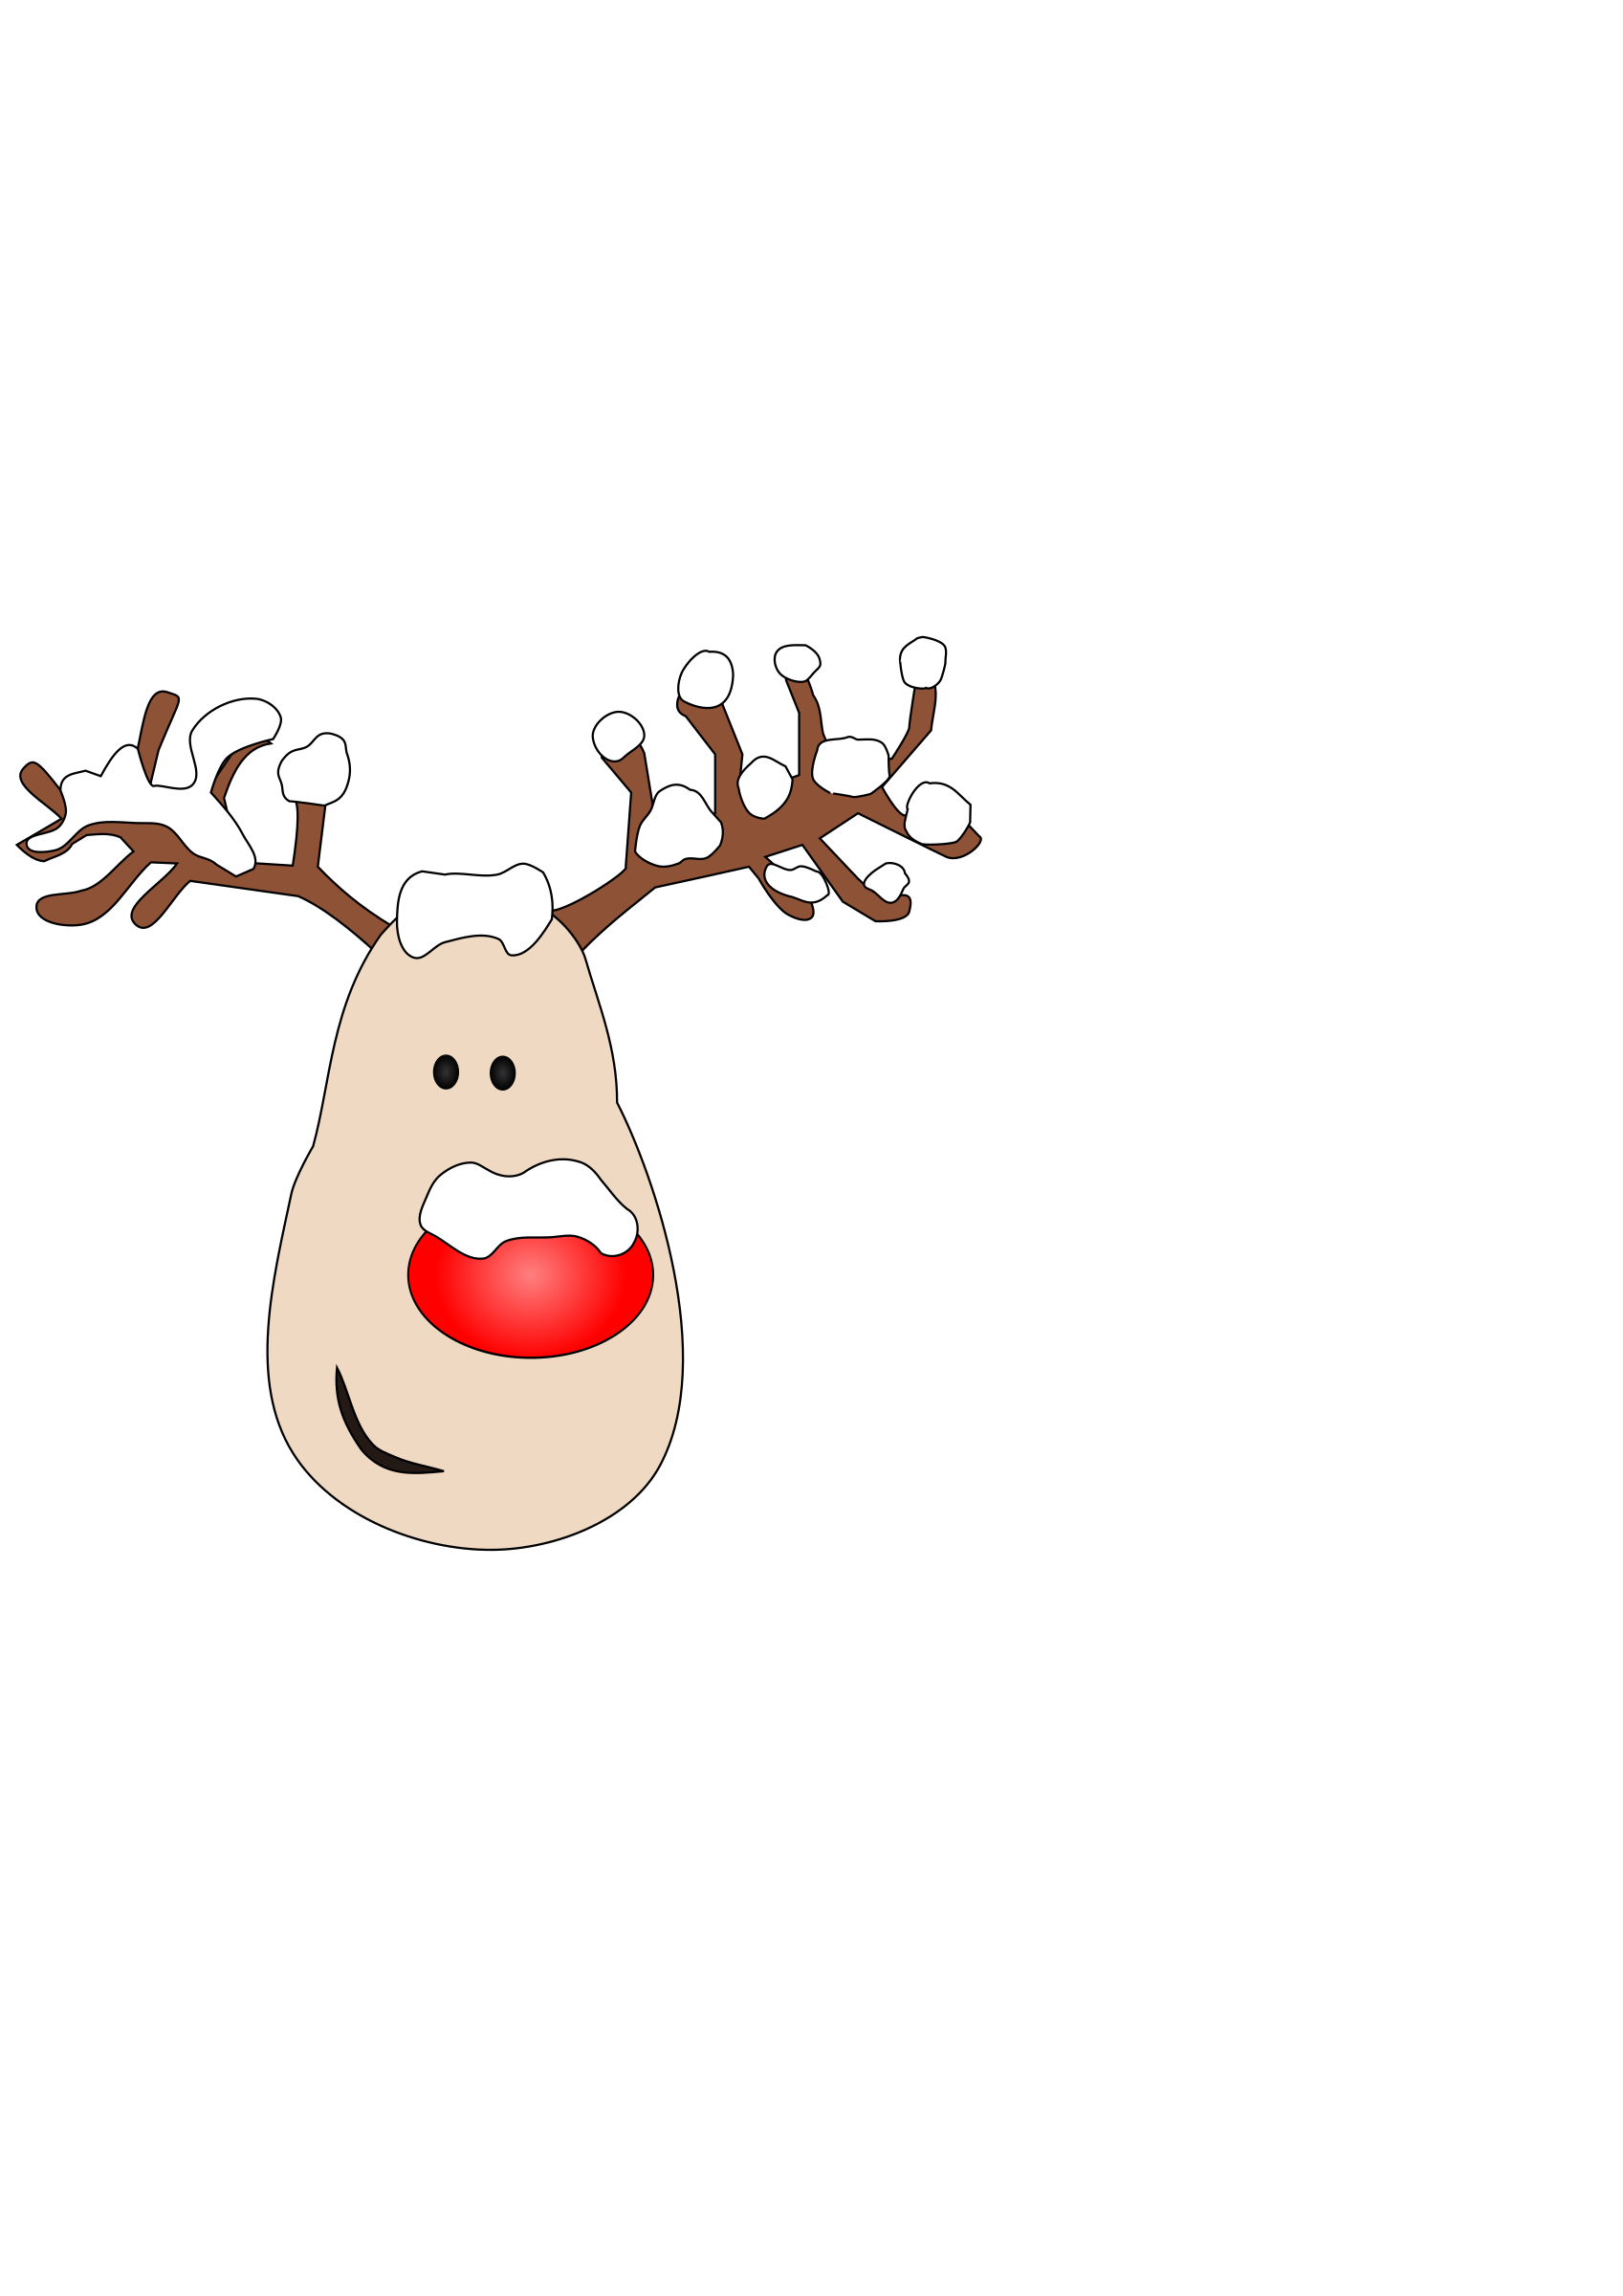 Red nose clipart free stock Reindeer with Red Nose and Antlers vector clipart image ... free stock